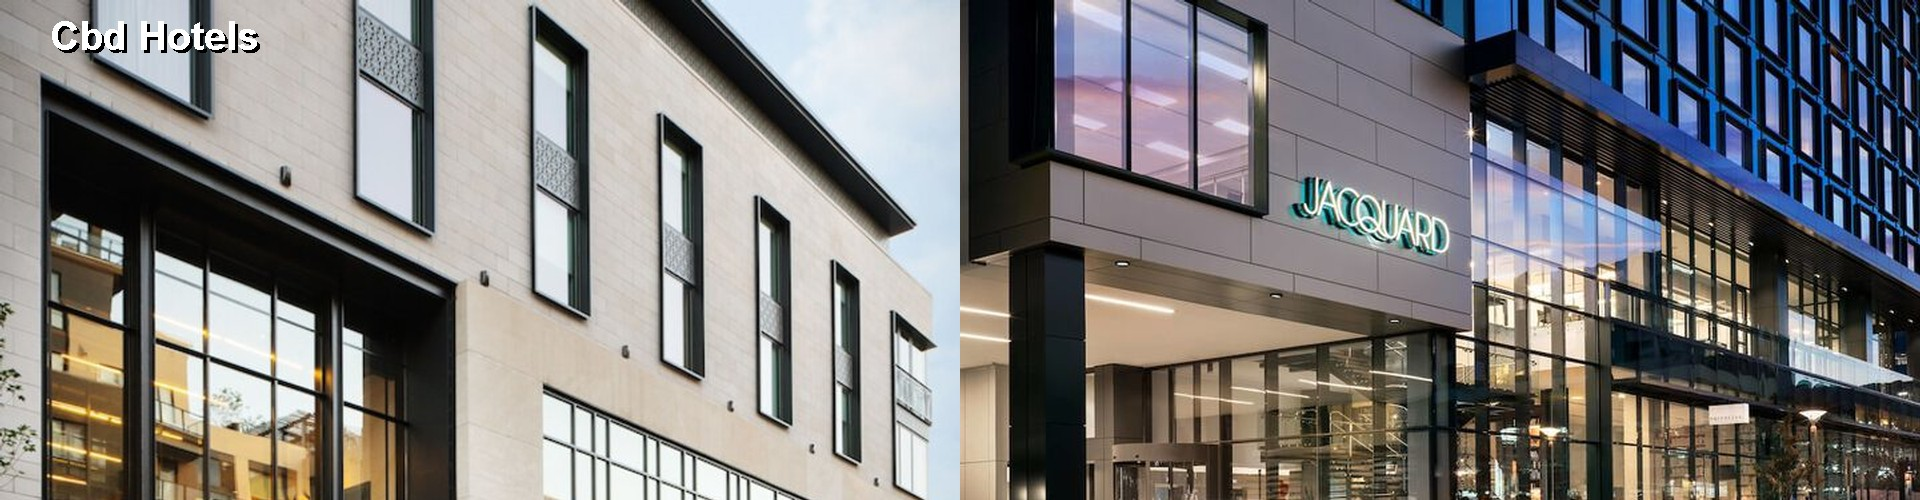 5 Best Hotels near Cbd